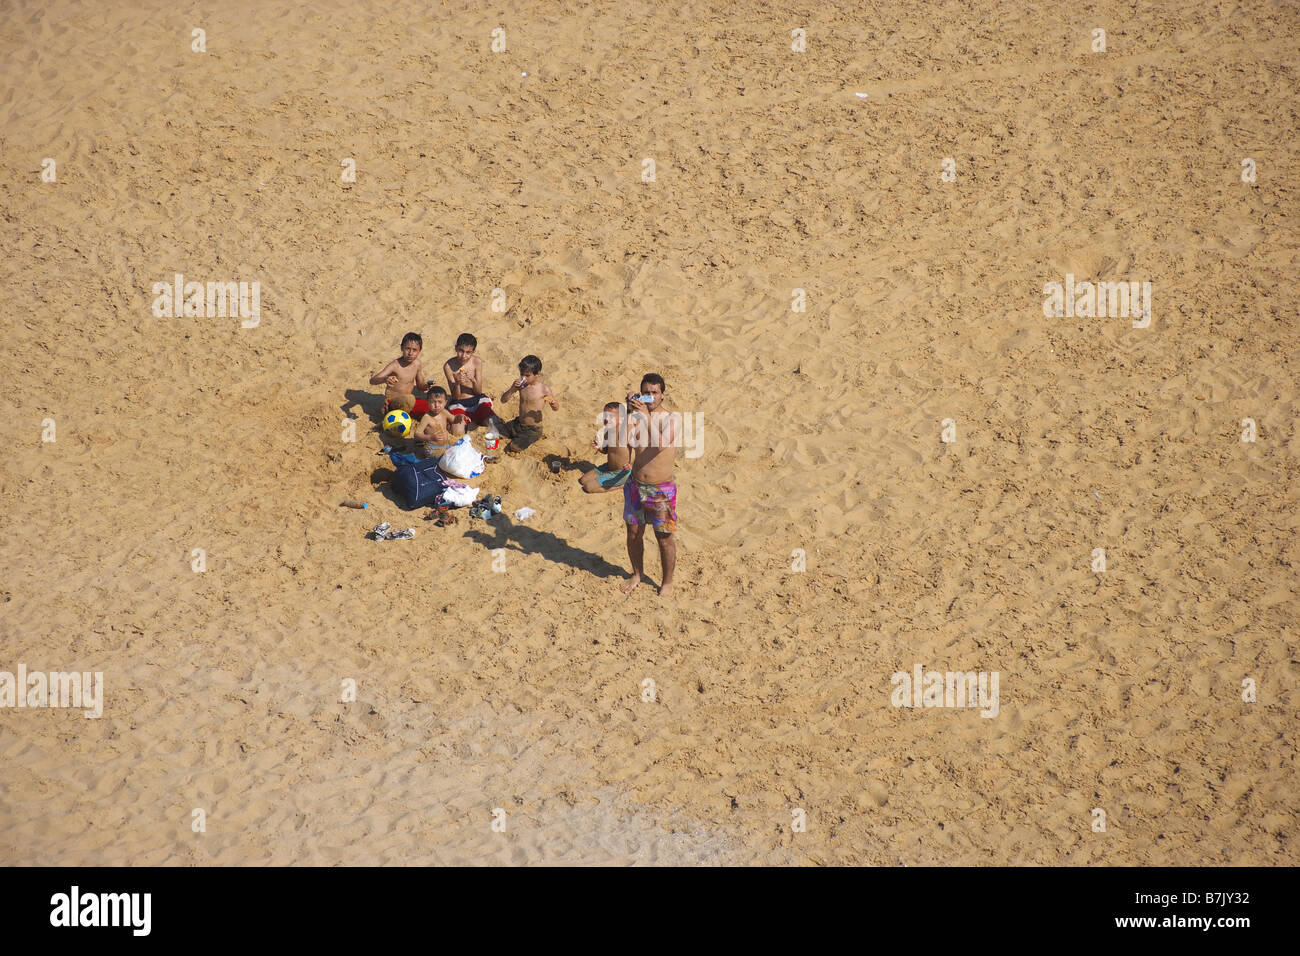 Aerial view of a young boys picnicking at a beach on the Black Sea coast of Istanbul Turkey - Stock Image